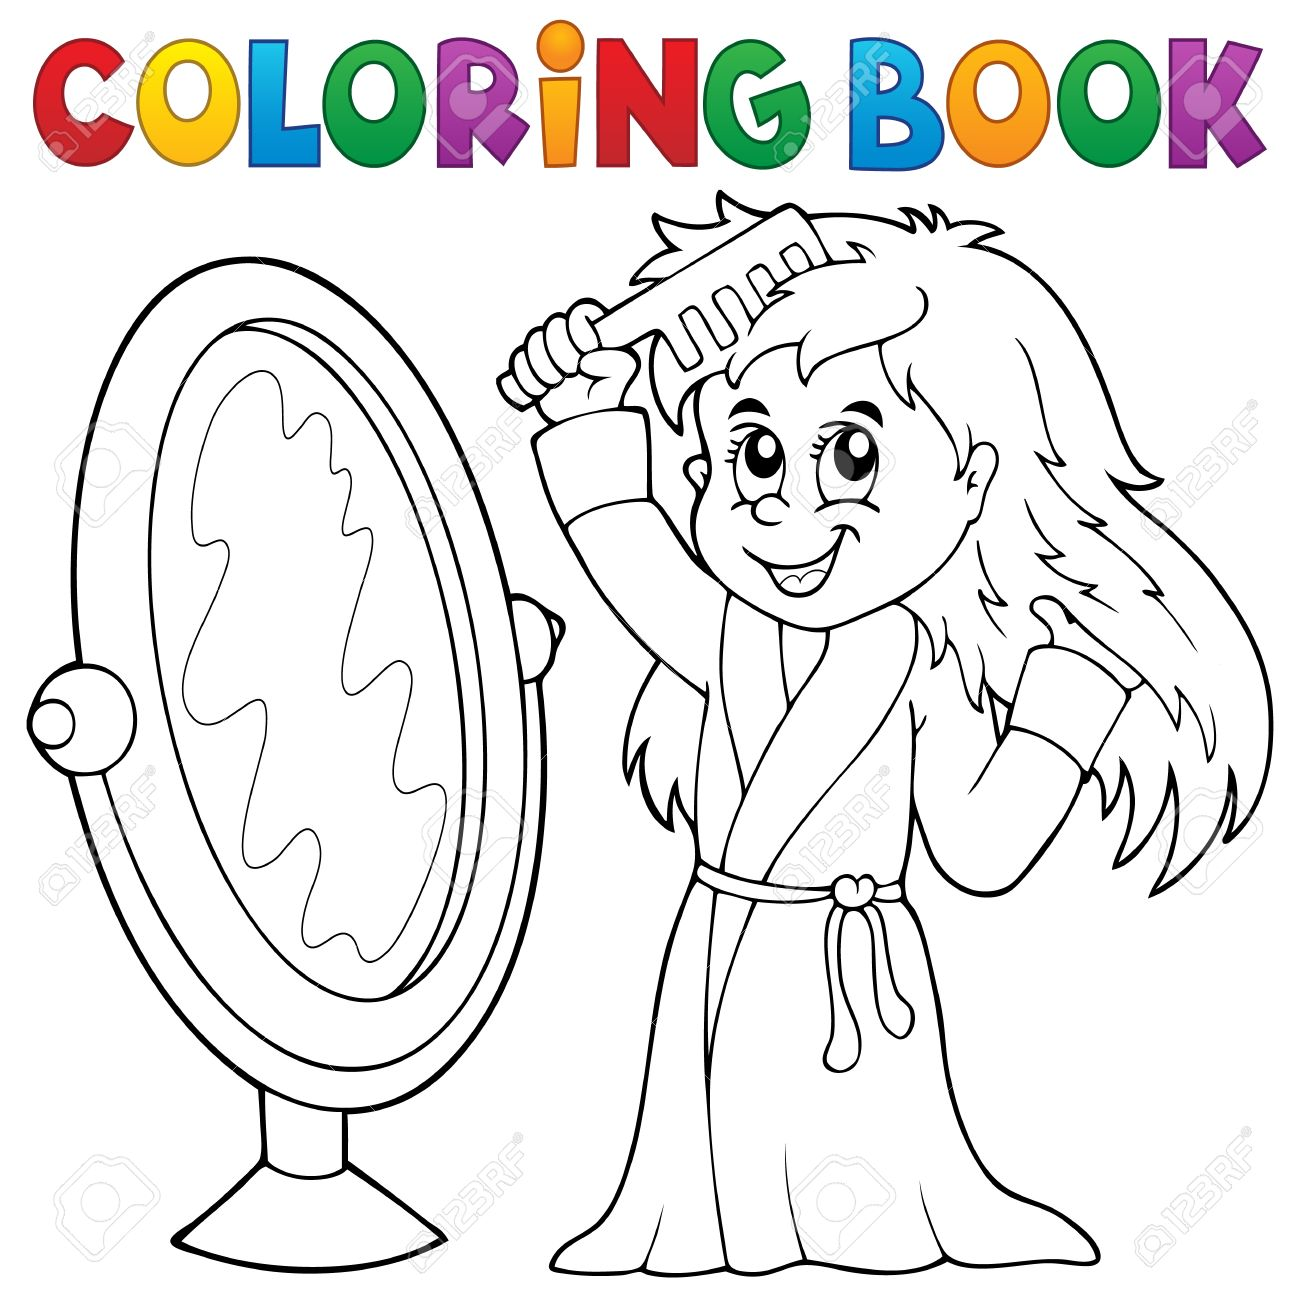 Coloring Book Girl Combing Hair Theme Royalty Free Cliparts, Vectors ...